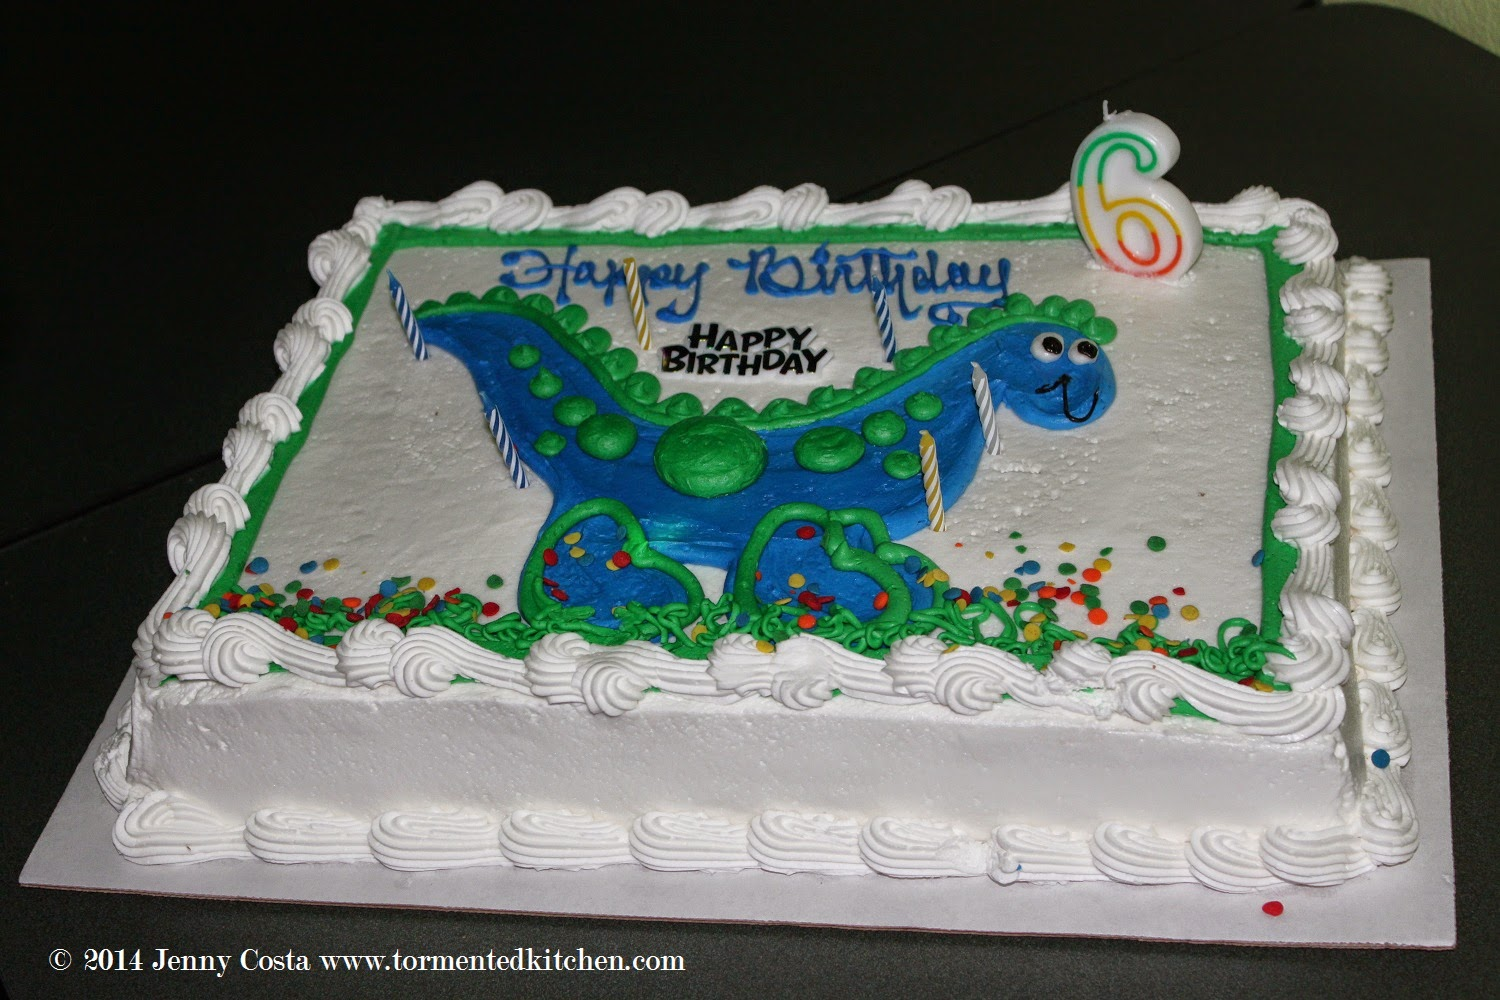 Tormented Kitchen Past Birthday Cake Gallery Part 2